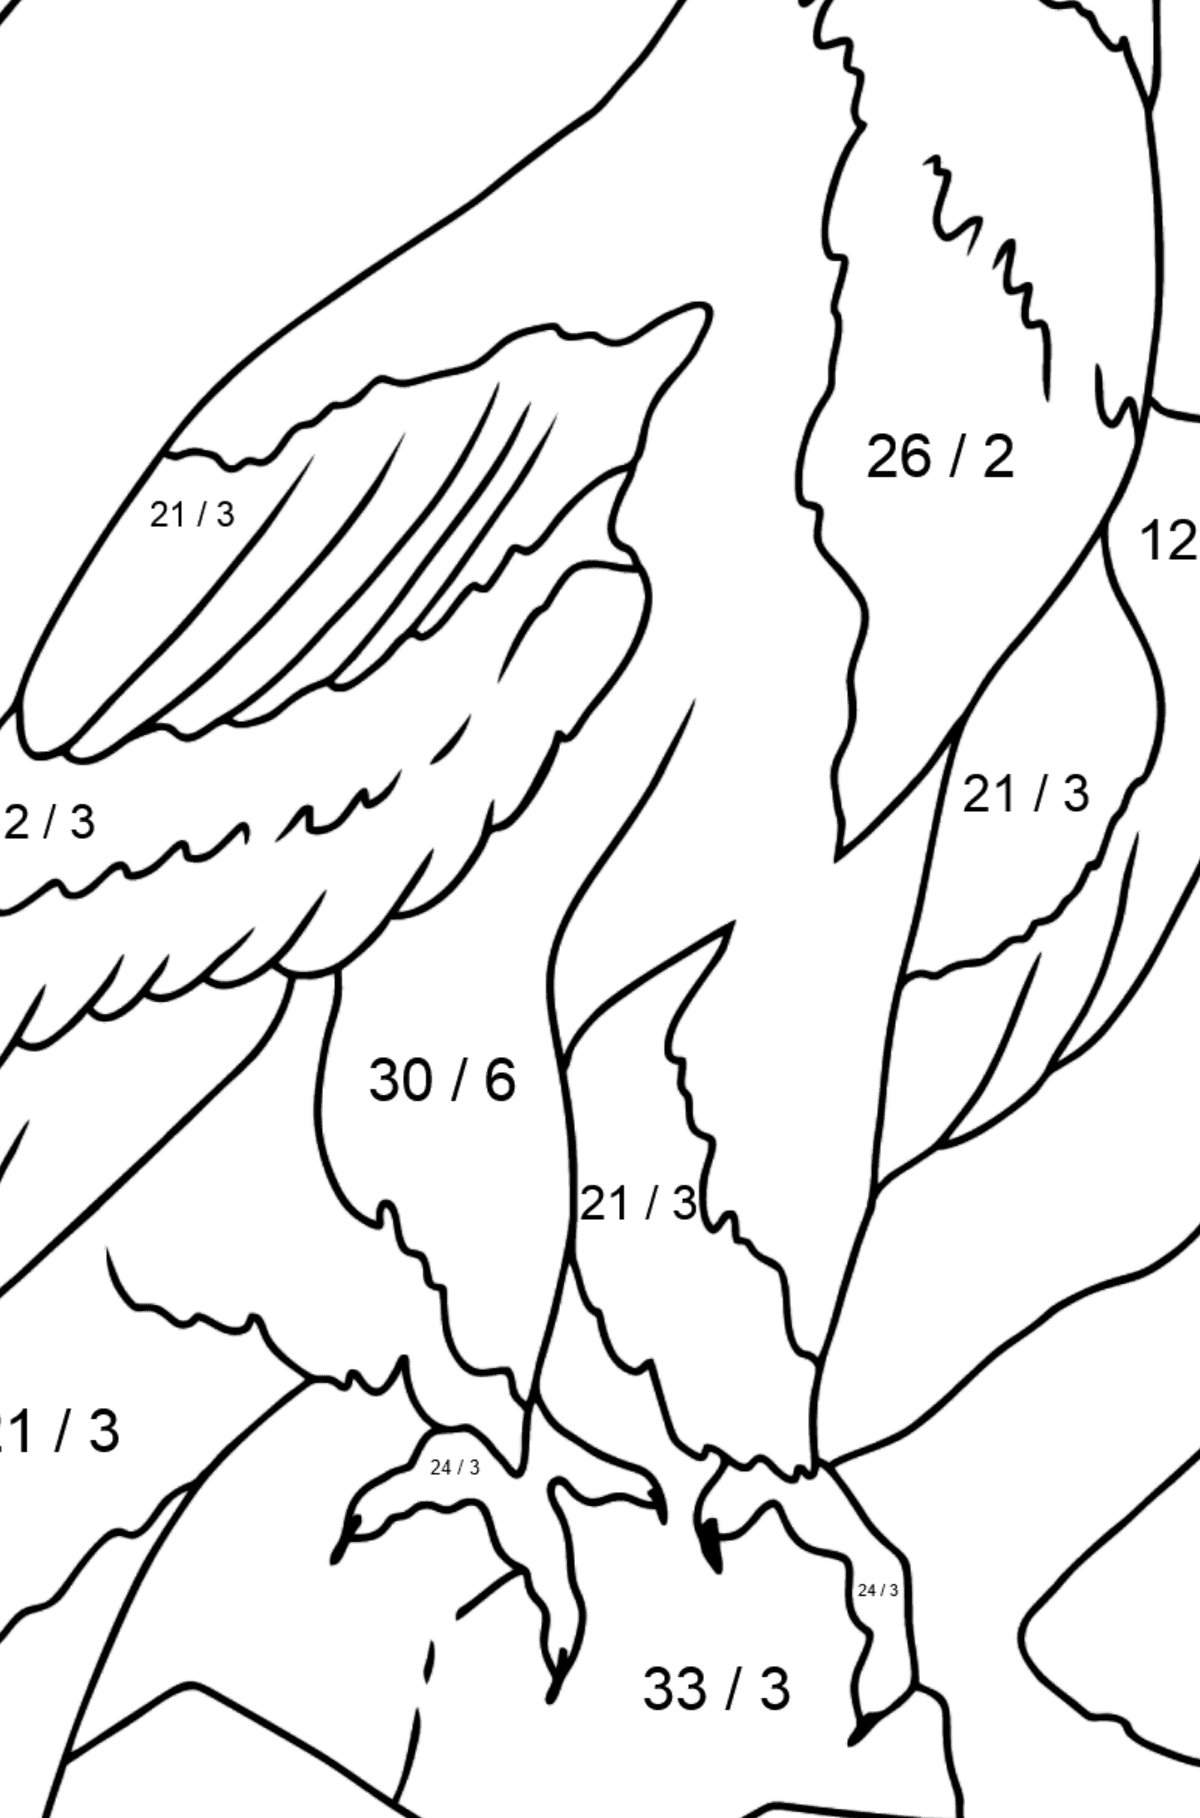 Coloring Page - An Alpine Eagle - Math Coloring - Division for Kids